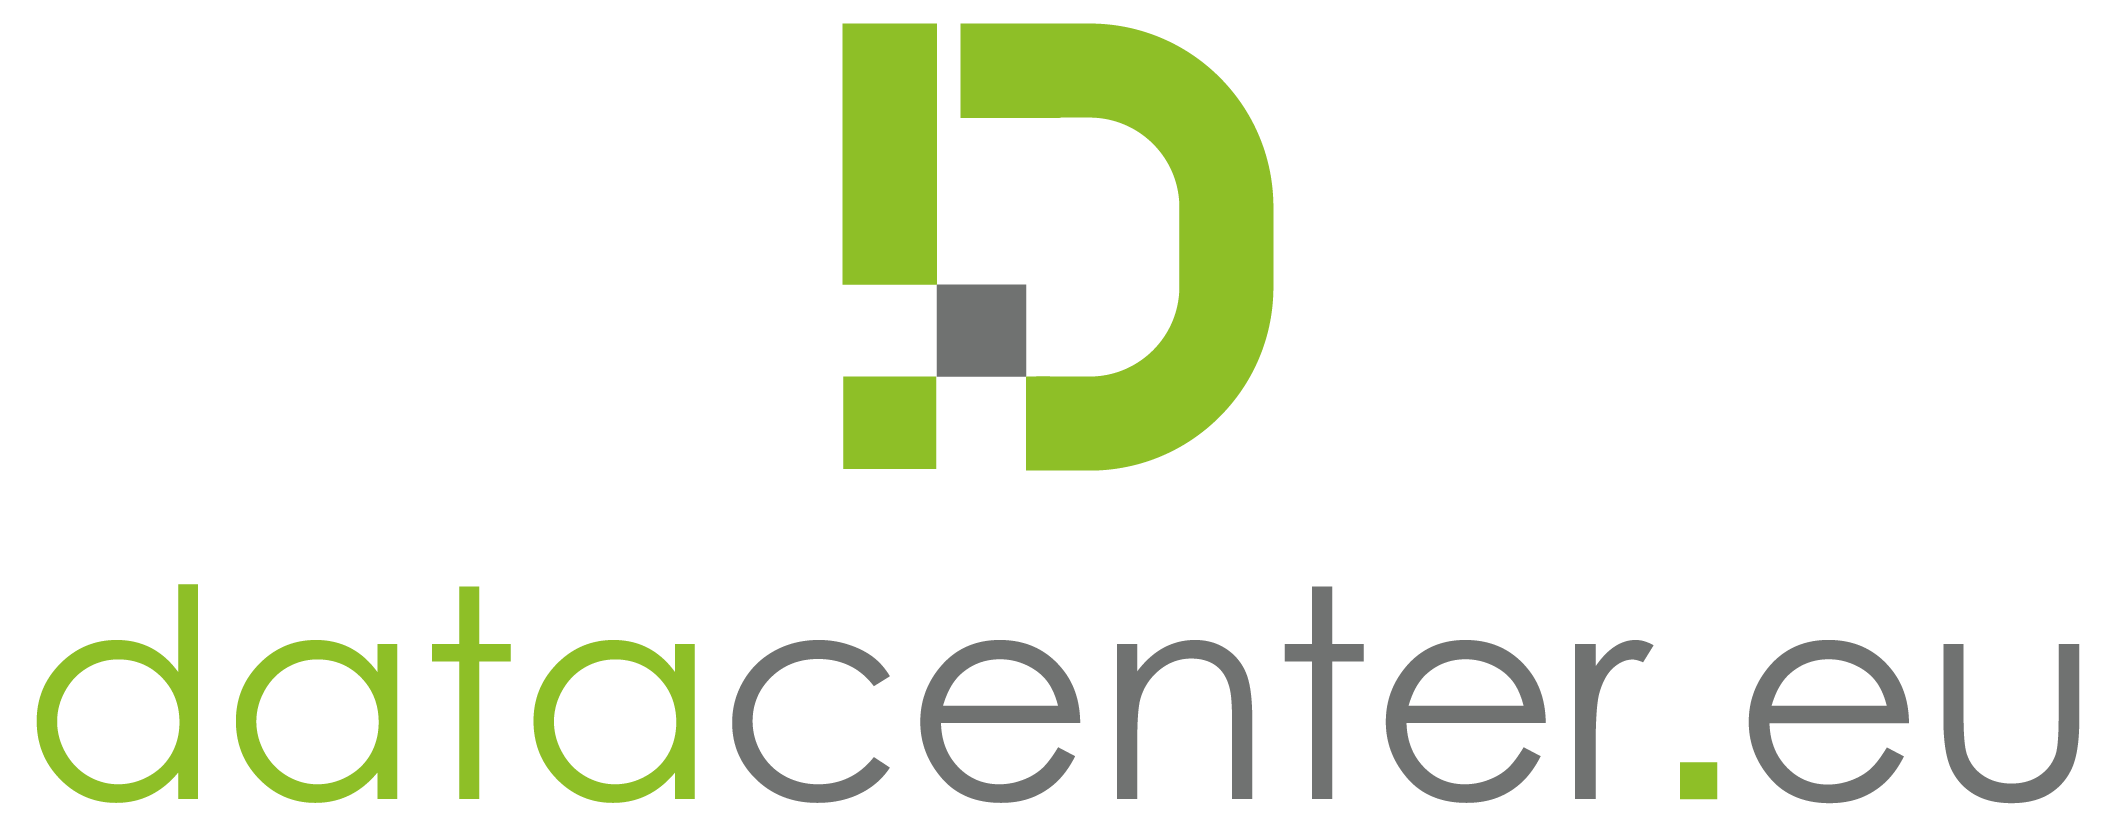 Data Center EU logo